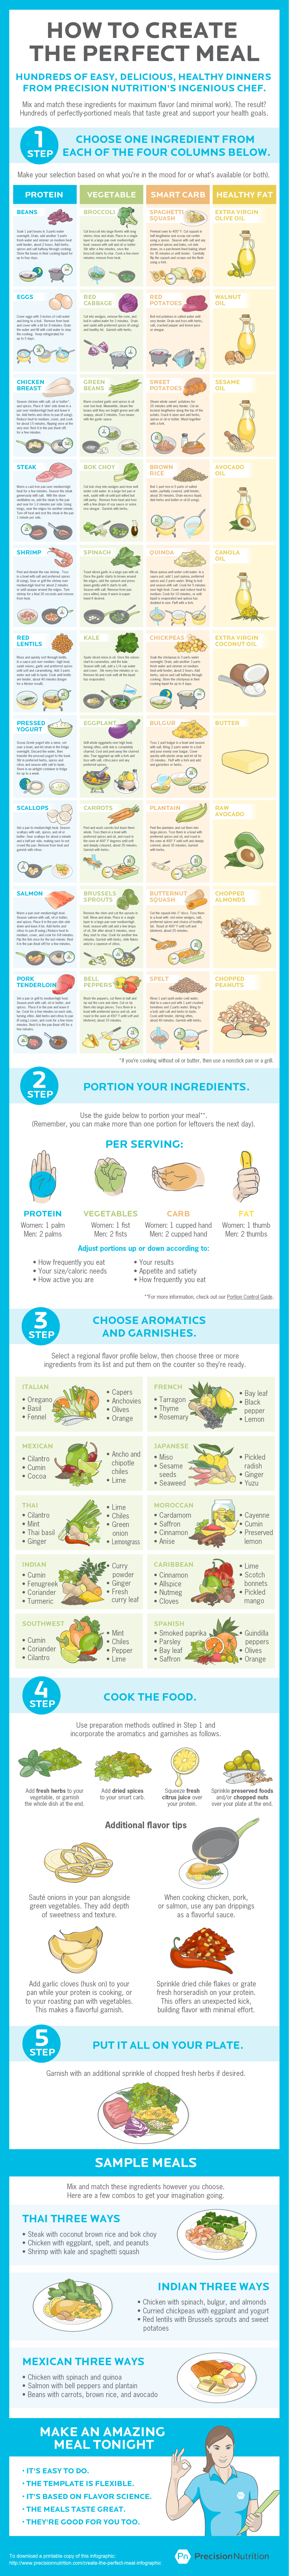 Create the perfect meal with this simple 5-step guide. [Infographic] Hundreds of healthy meal combinations made easy.